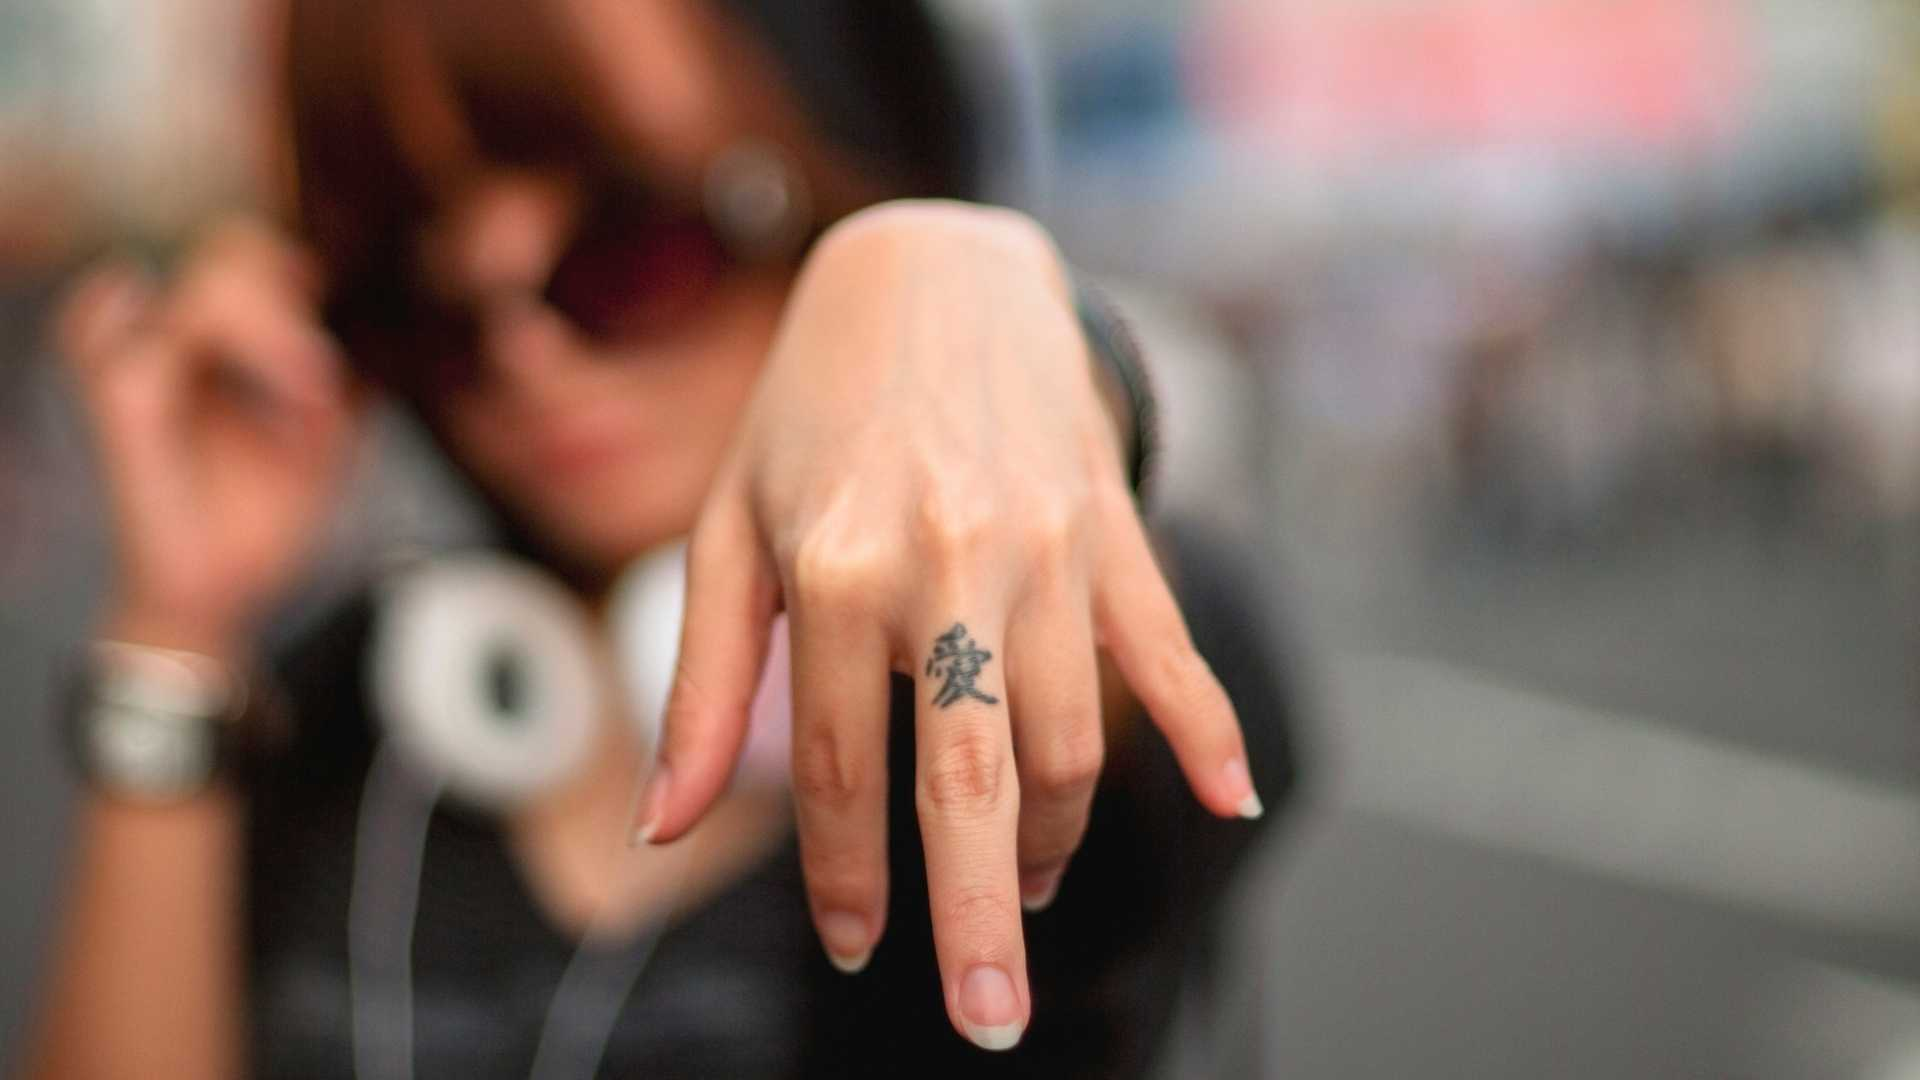 Guide to having Tattoos in Japan, which onsen allows tattoos